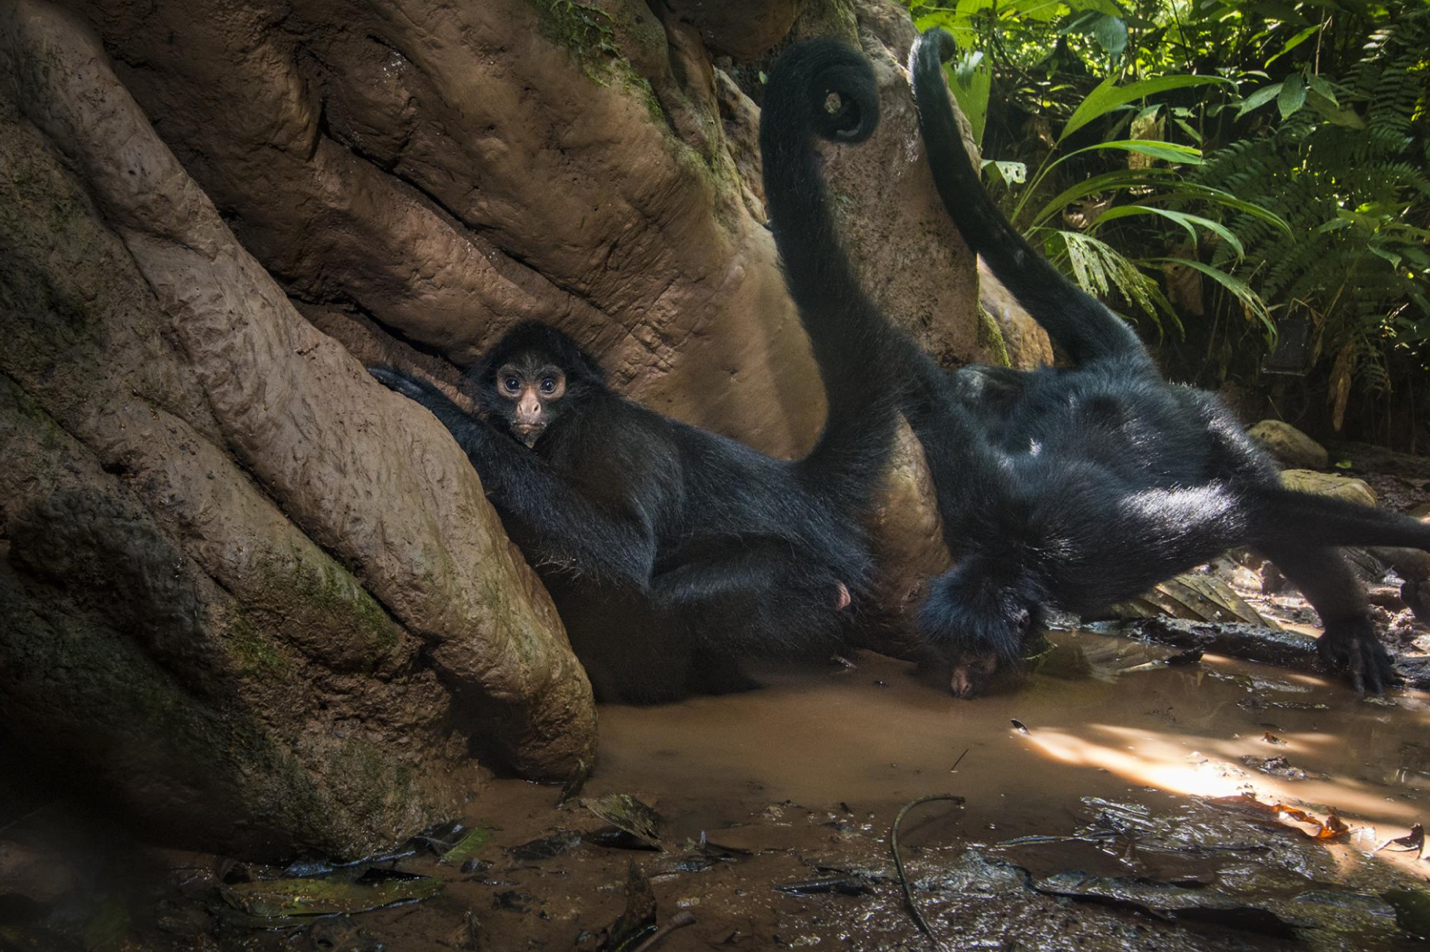 Spider Monkeys - Photo: Charlie Hamilton James/National Geographic